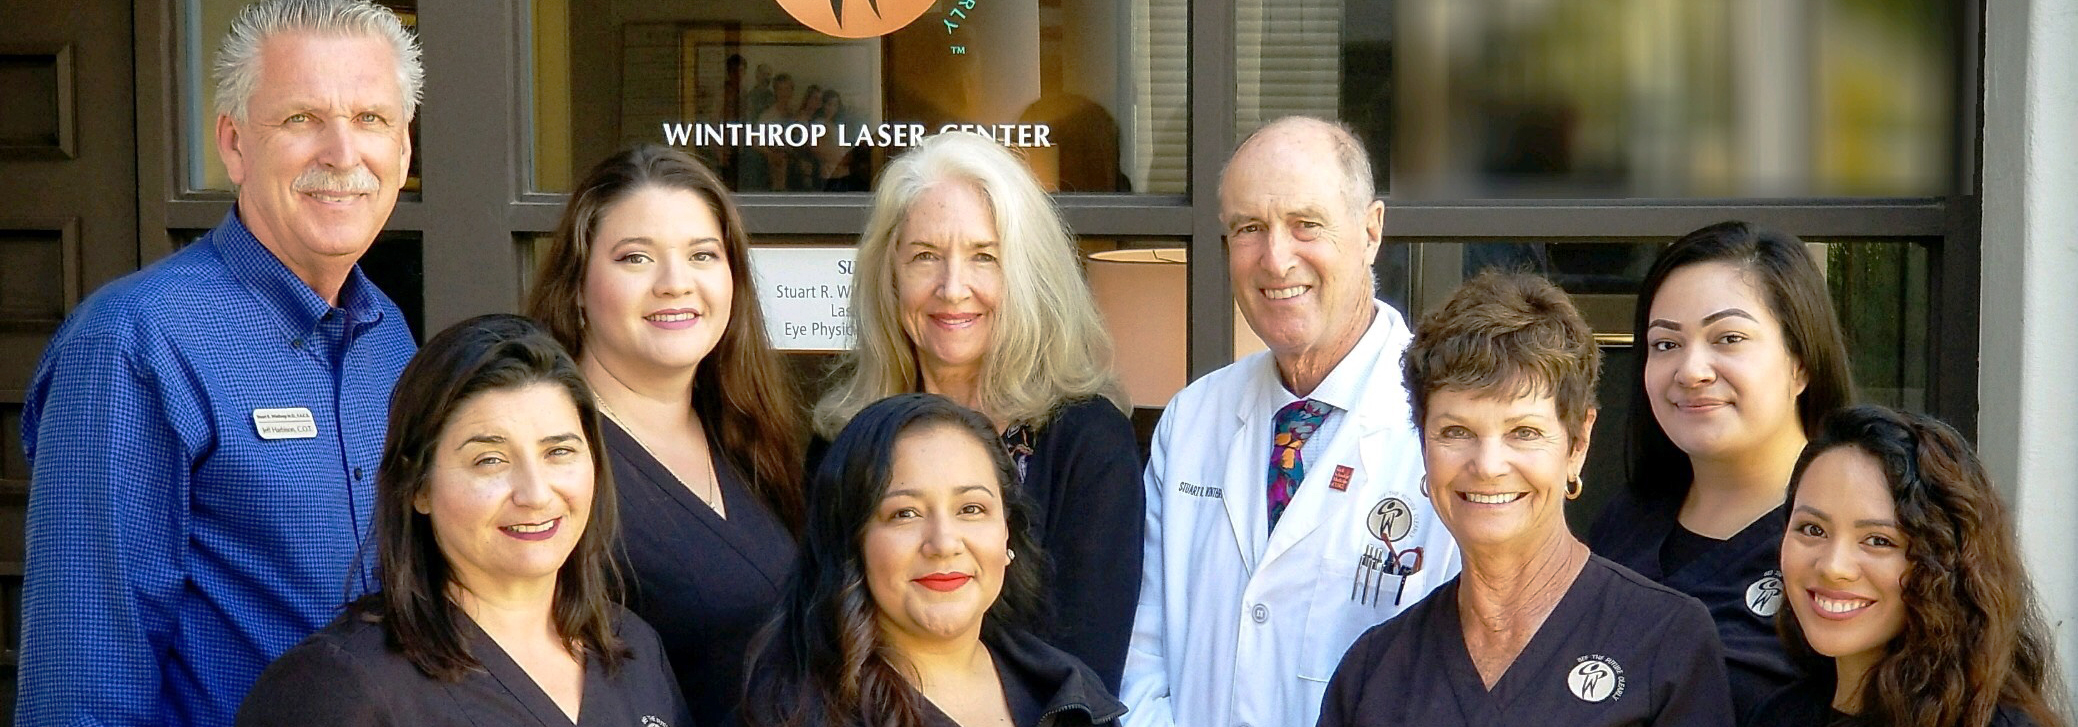 Dr. Winthrop and his caring staff